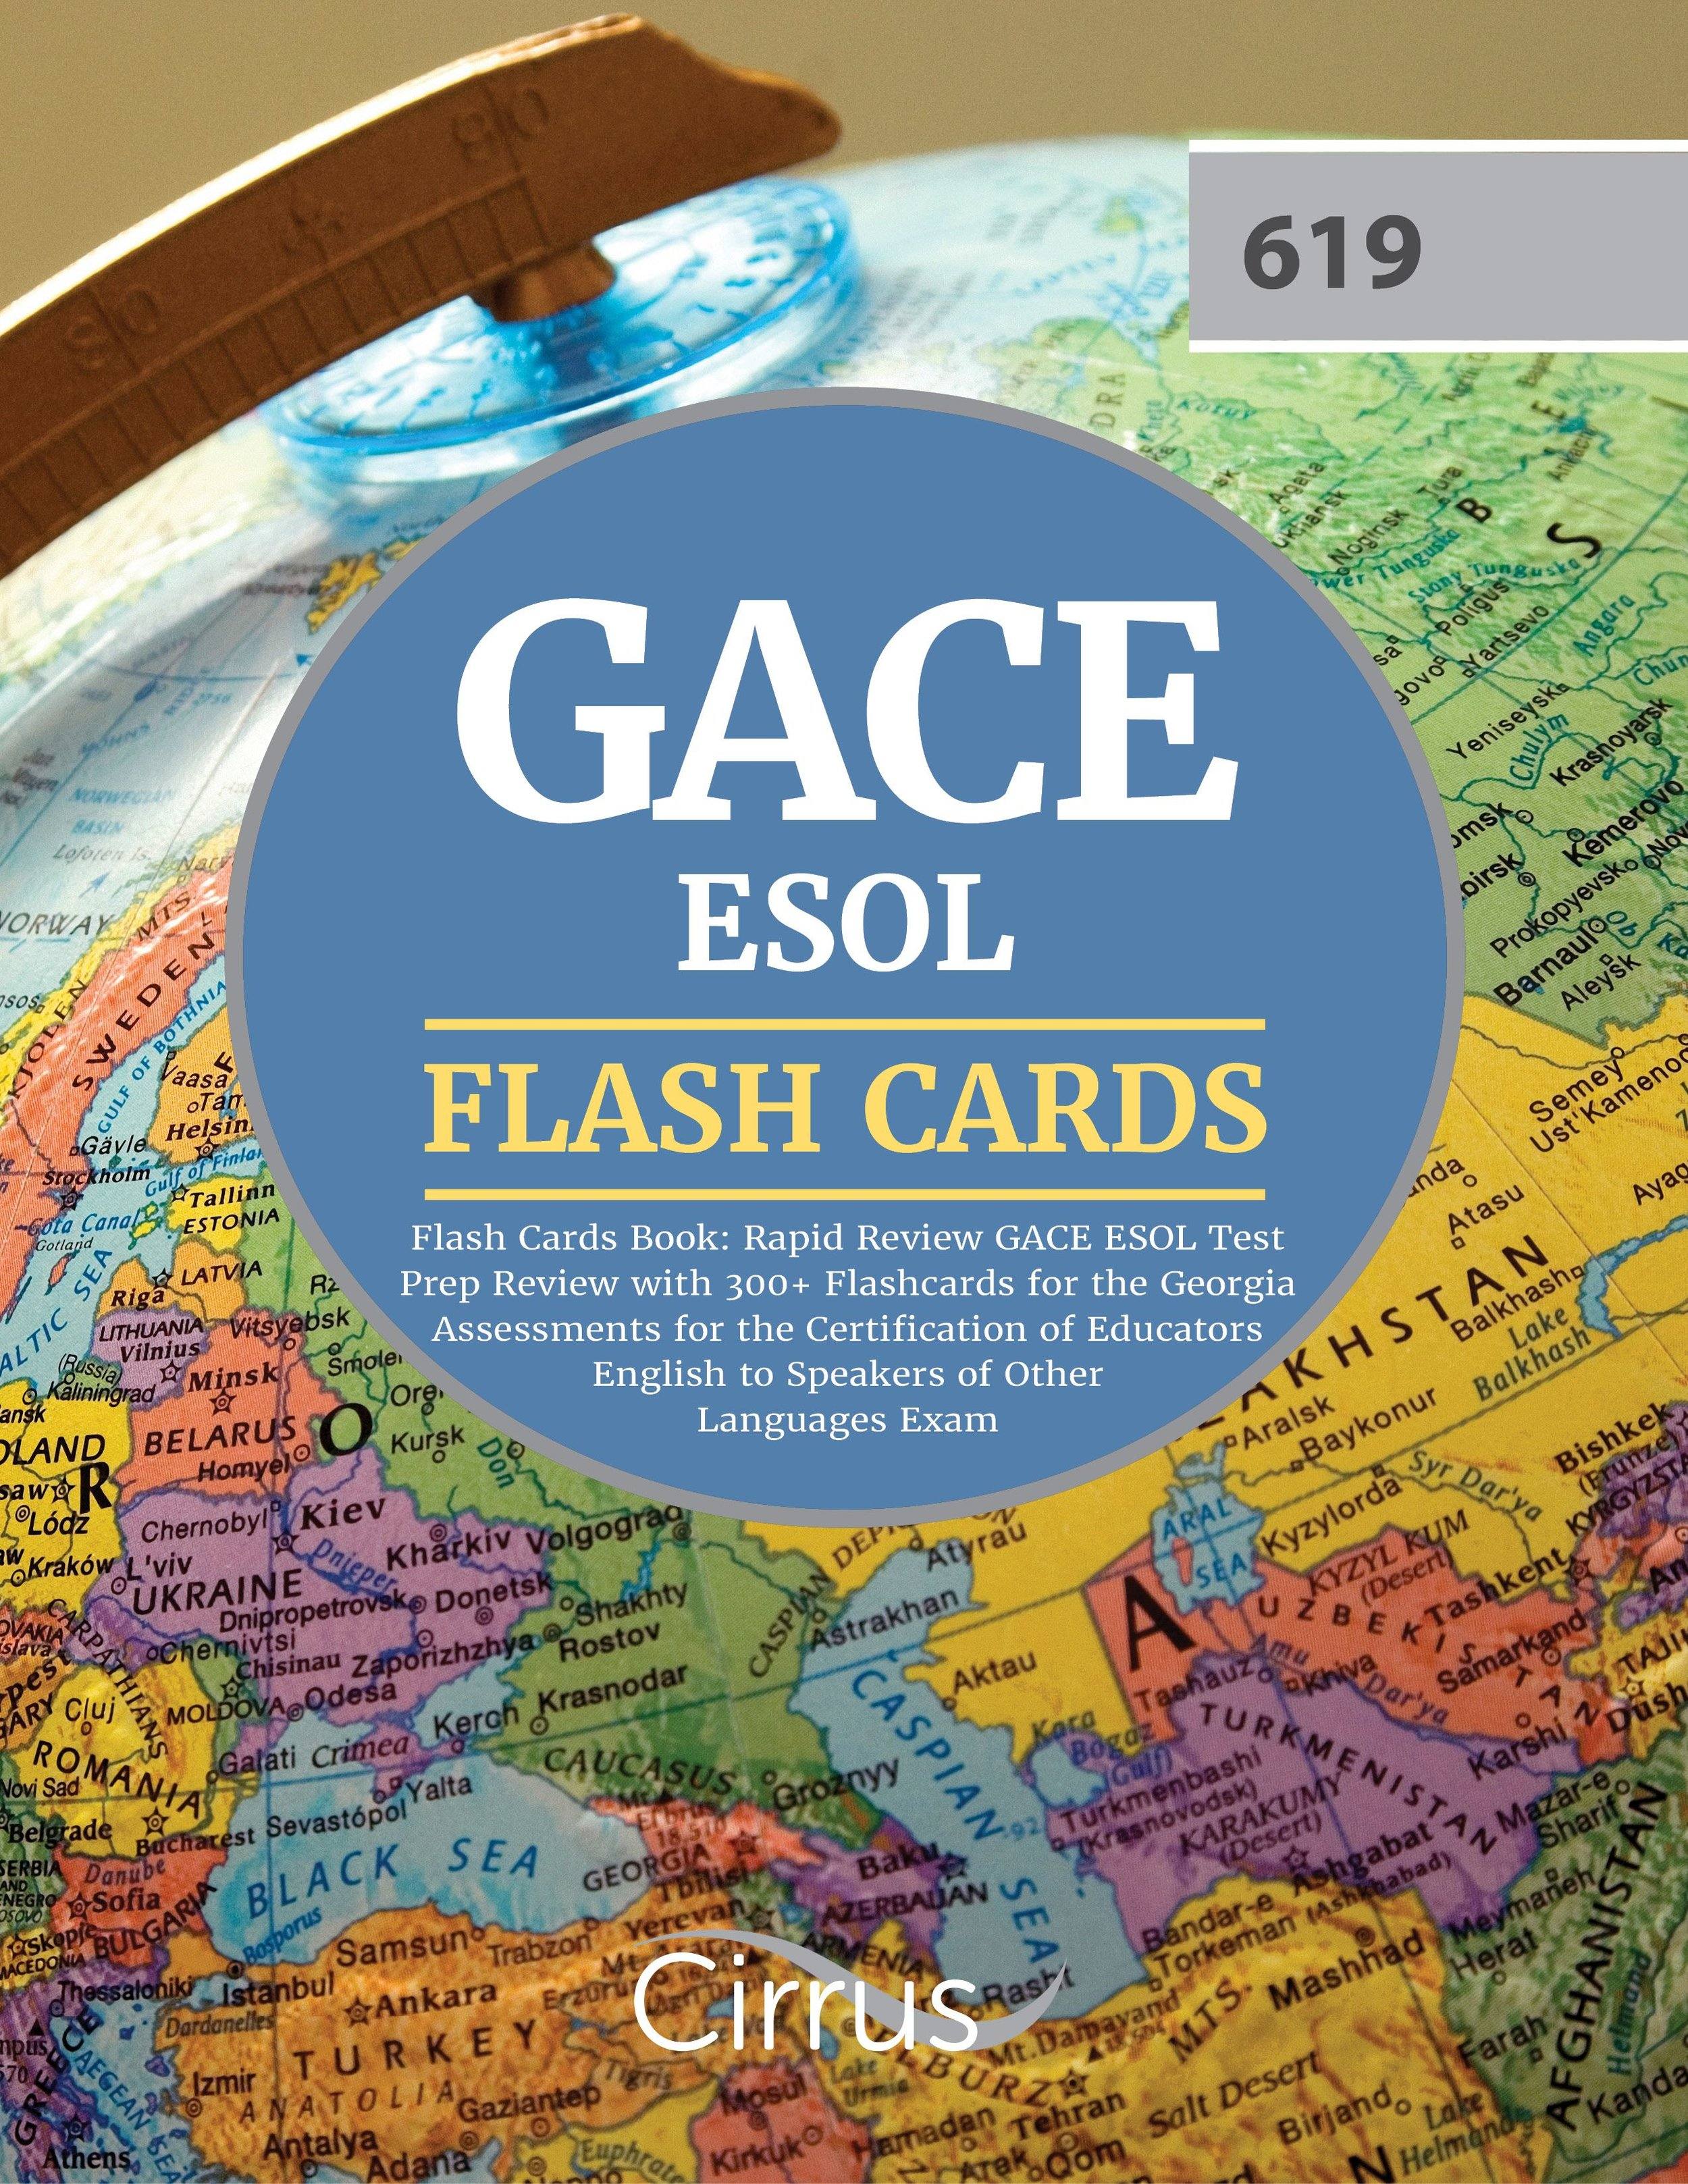 GACE ESOL Flash Cards Book